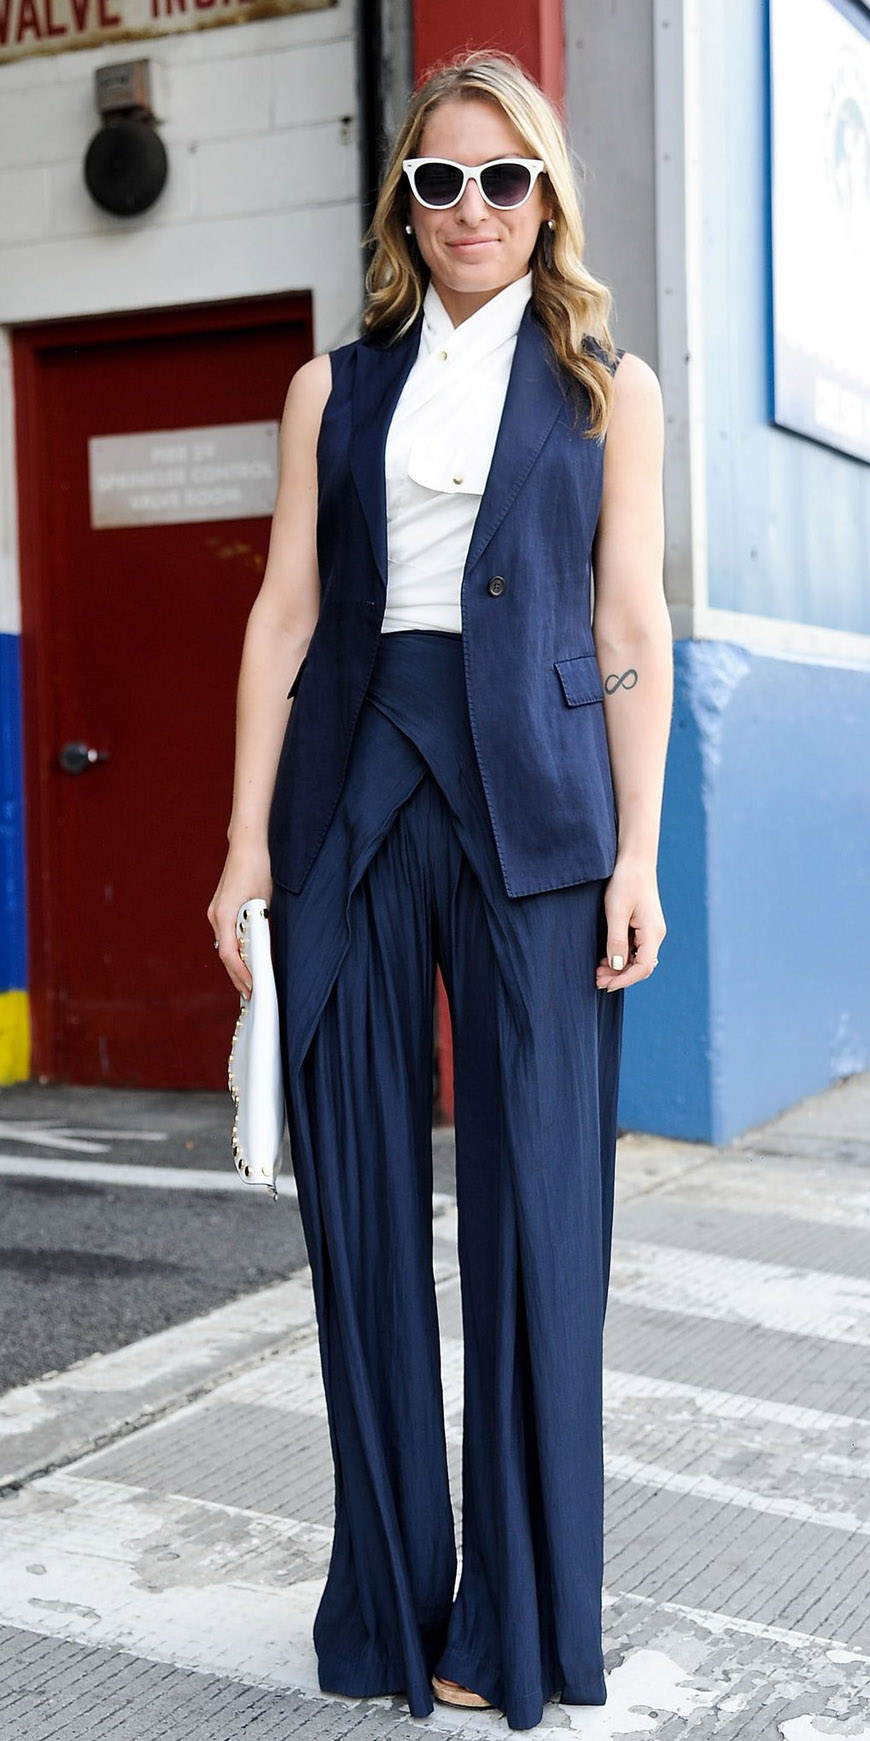 blue-navy-wideleg-pants-white-top-sun-blonde-blue-navy-vest-tailor-suit-spring-summer-work.jpg